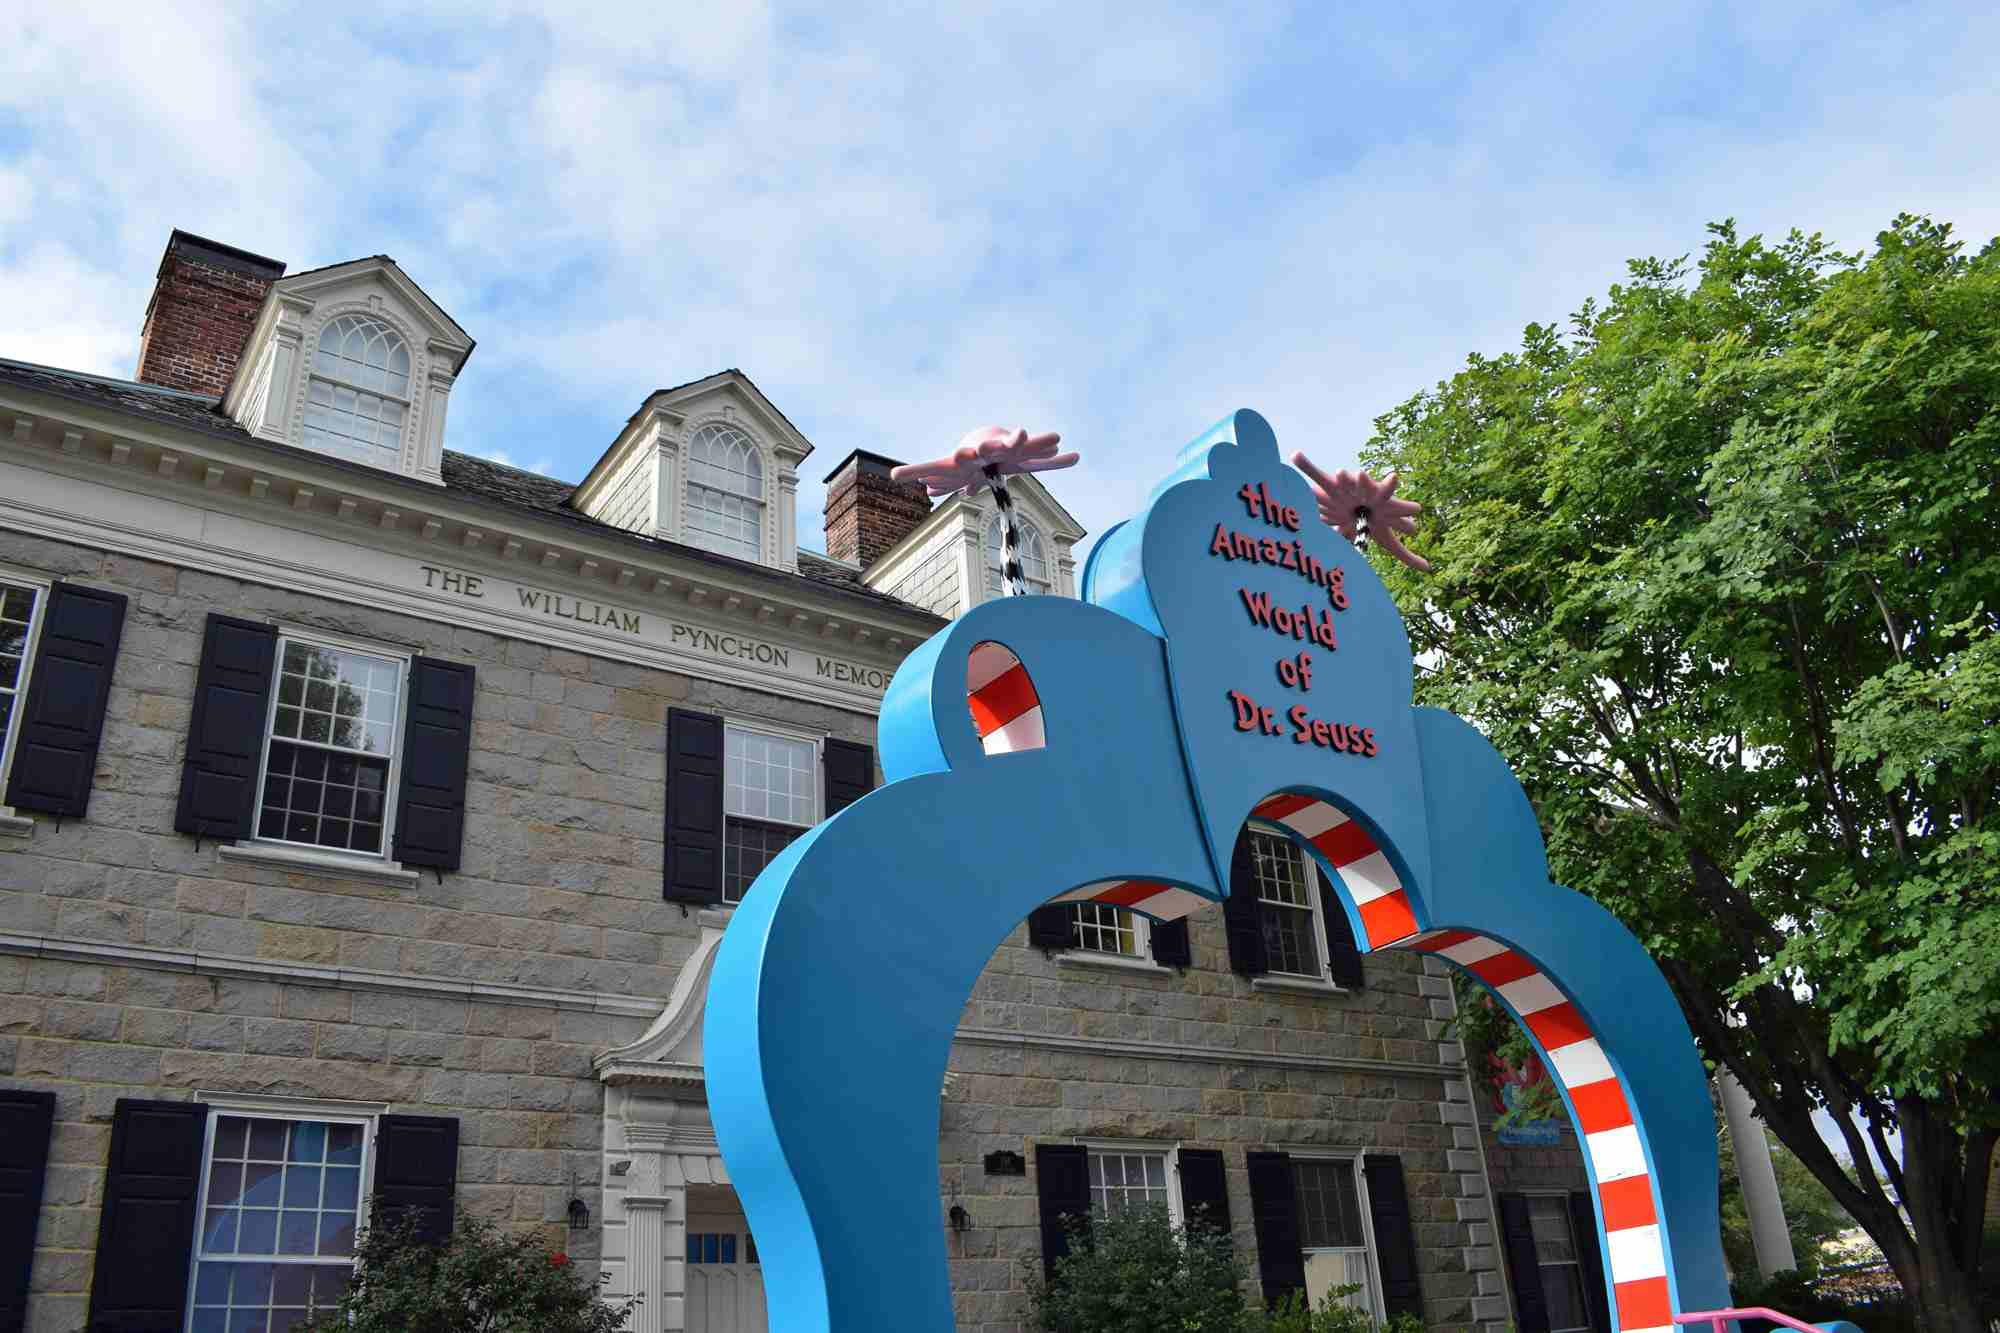 The Amazing World of Dr. Seuss Museum in Springfield